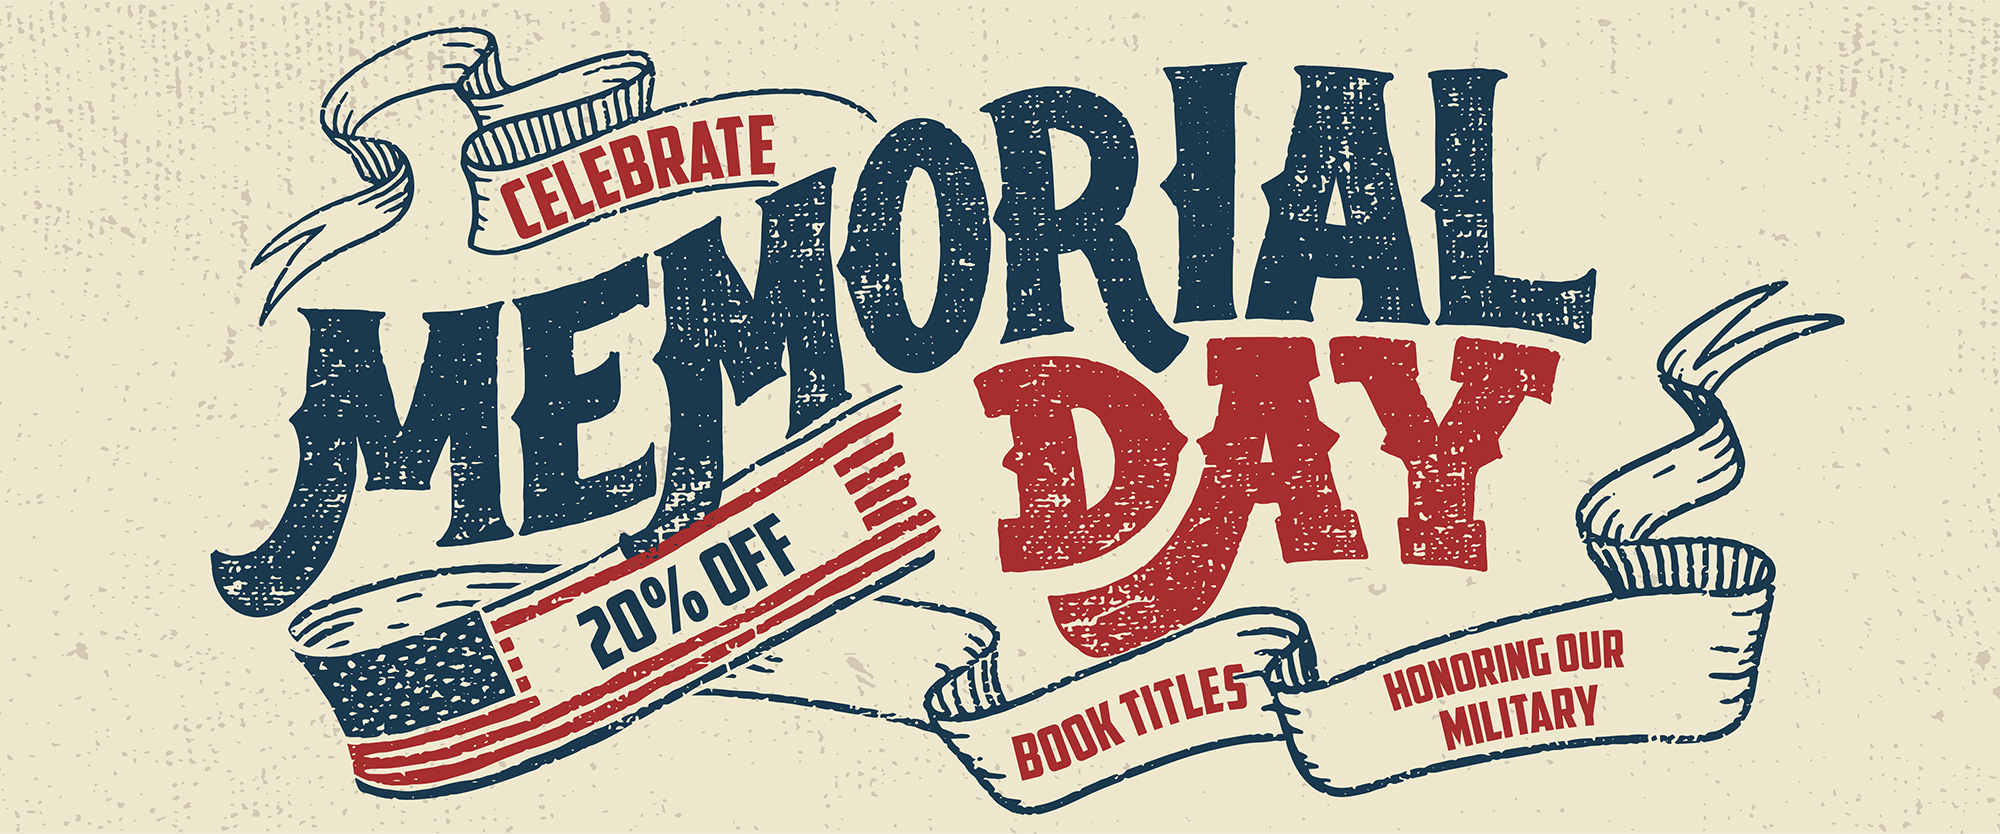 Memorial day books - 20% off